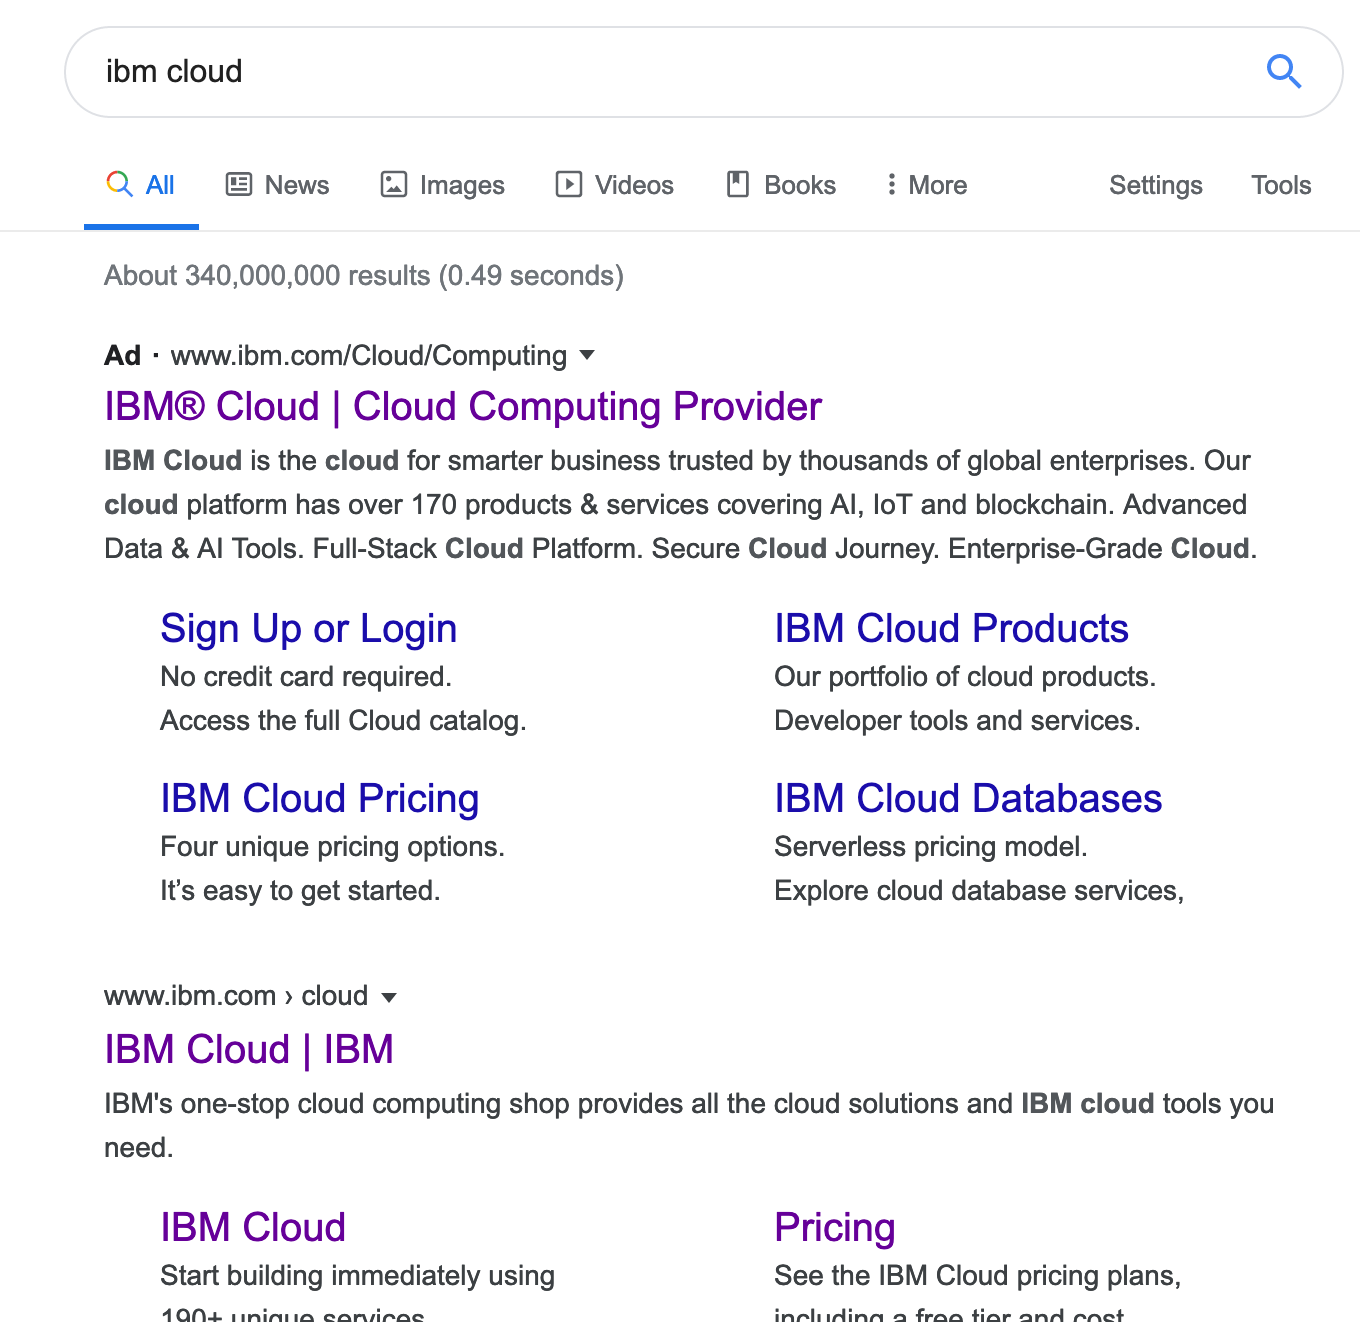 5 Takeaways from Poking around IBM Cloud